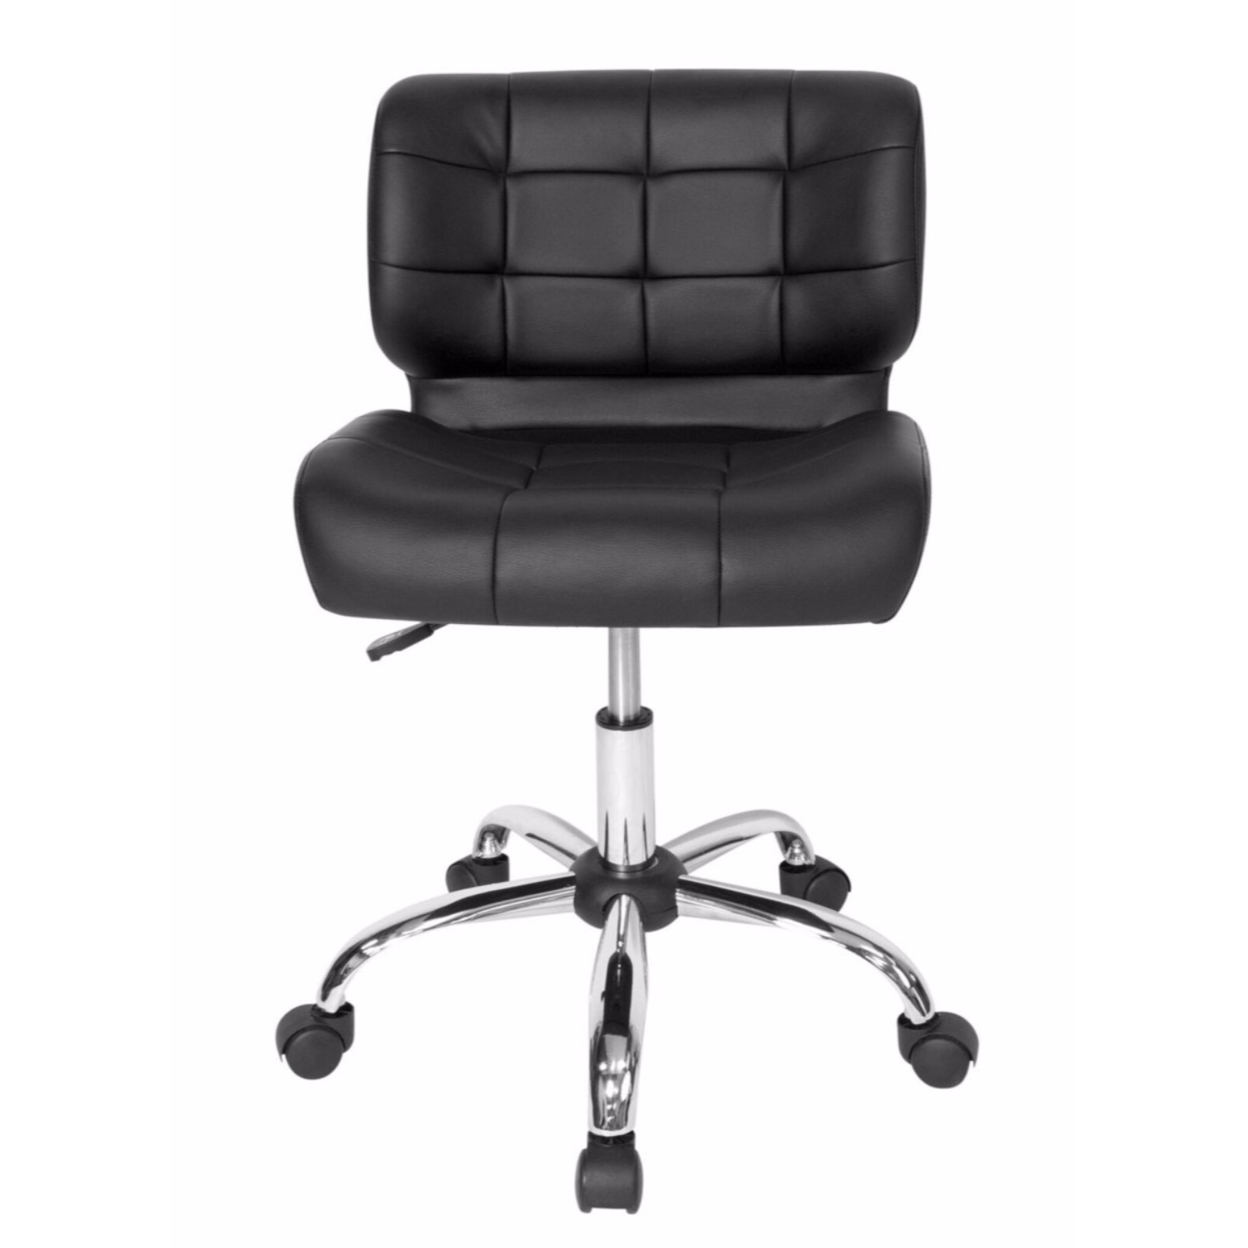 Offex Home Office Black Crest Office Chair - Chrome/Black